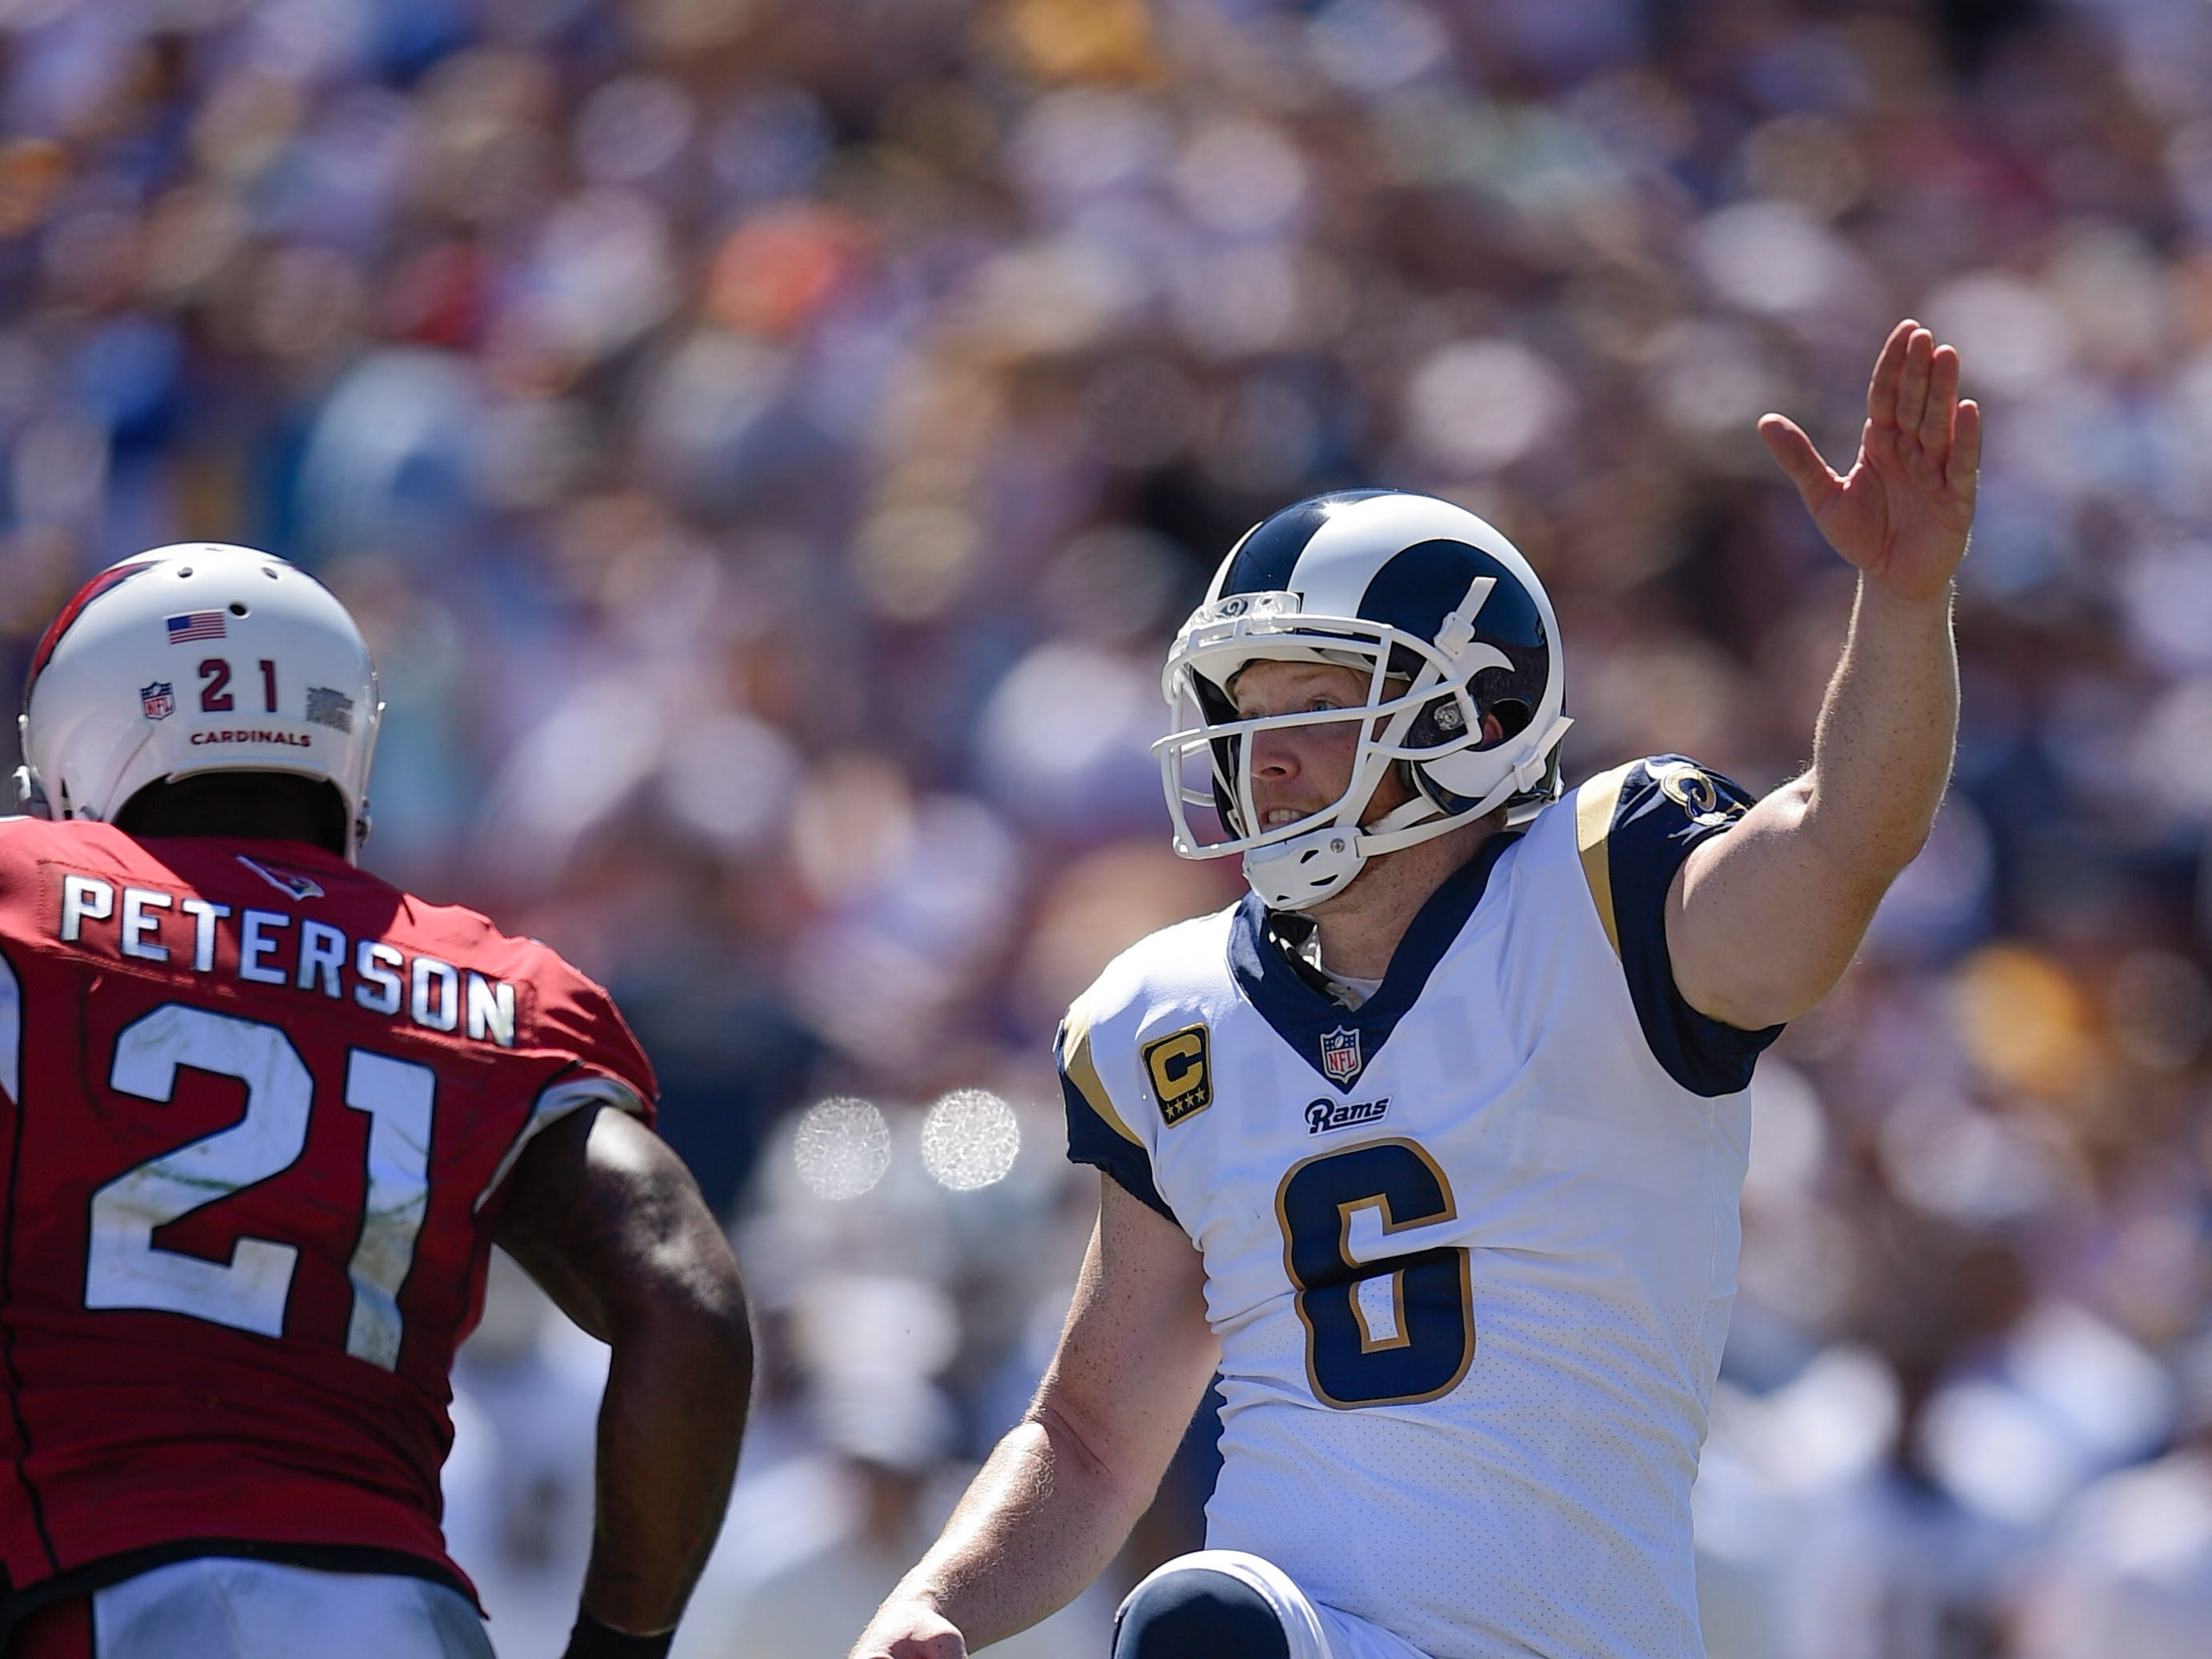 Sep 16, 2018; Los Angeles, CA, USA; Los Angeles Rams punter Johnny Hekker (6) looks up after kicking a field goal during the first half against the Arizona Cardinals at Los Angeles Memorial Coliseum. Mandatory Credit: Kelvin Kuo-USA TODAY Sports